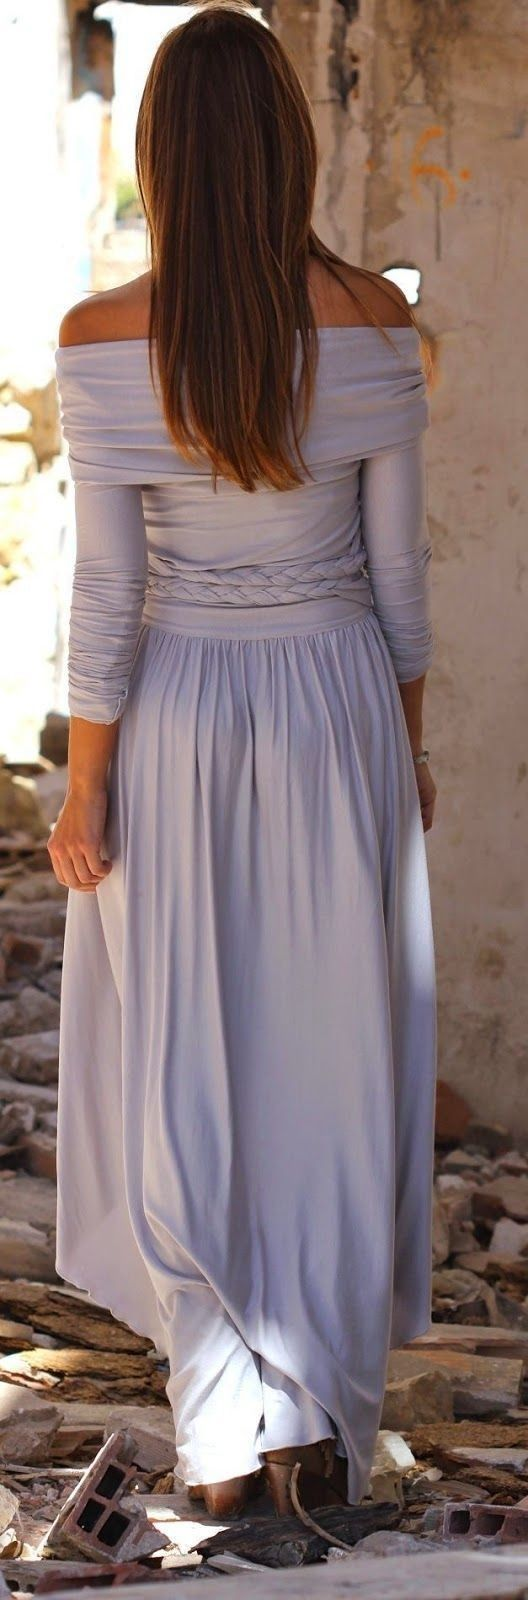 #street #style #spring #2016 #inspiration | Off the shoulder pastel maxi dress